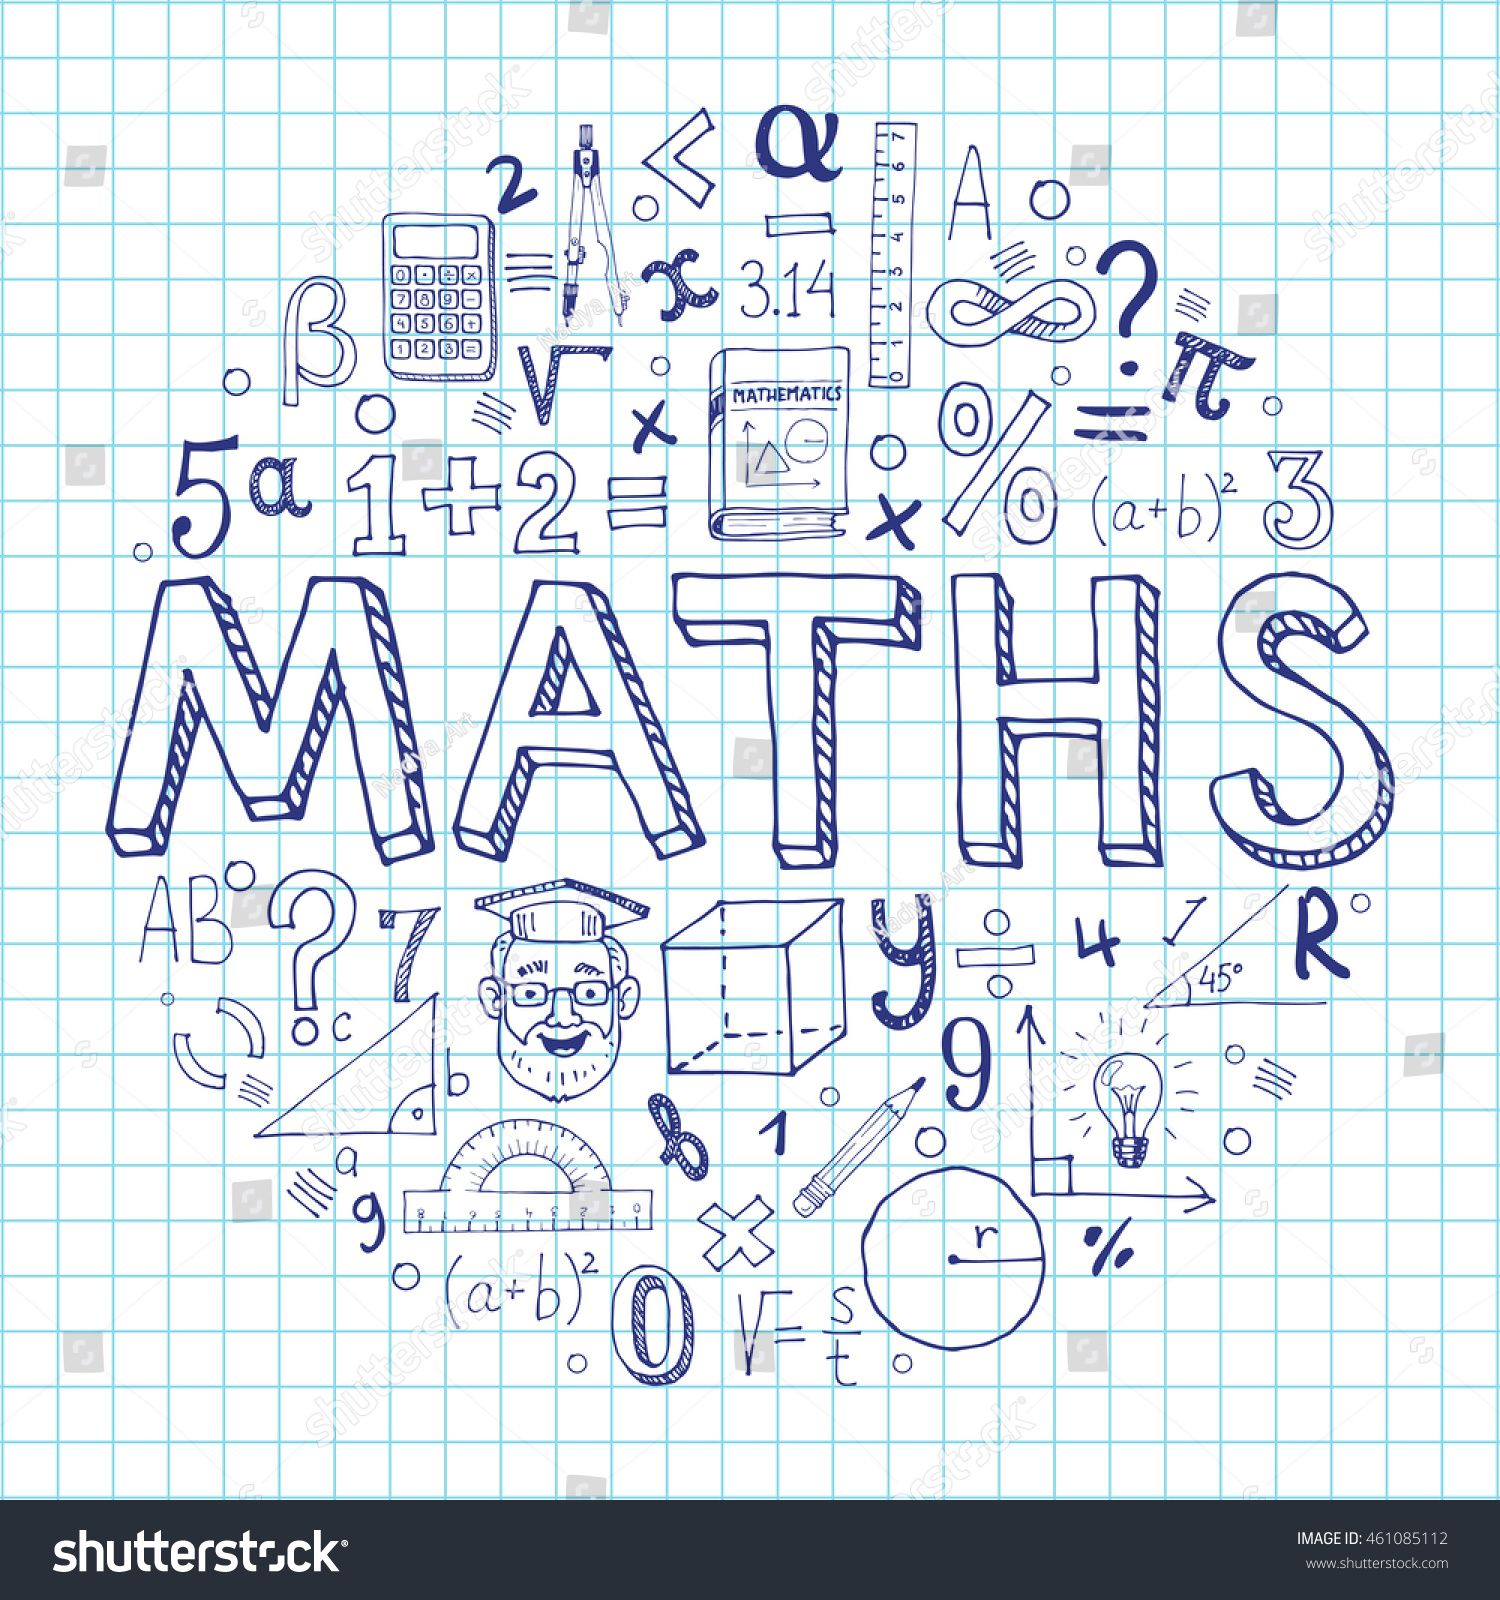 Image result for Maths background